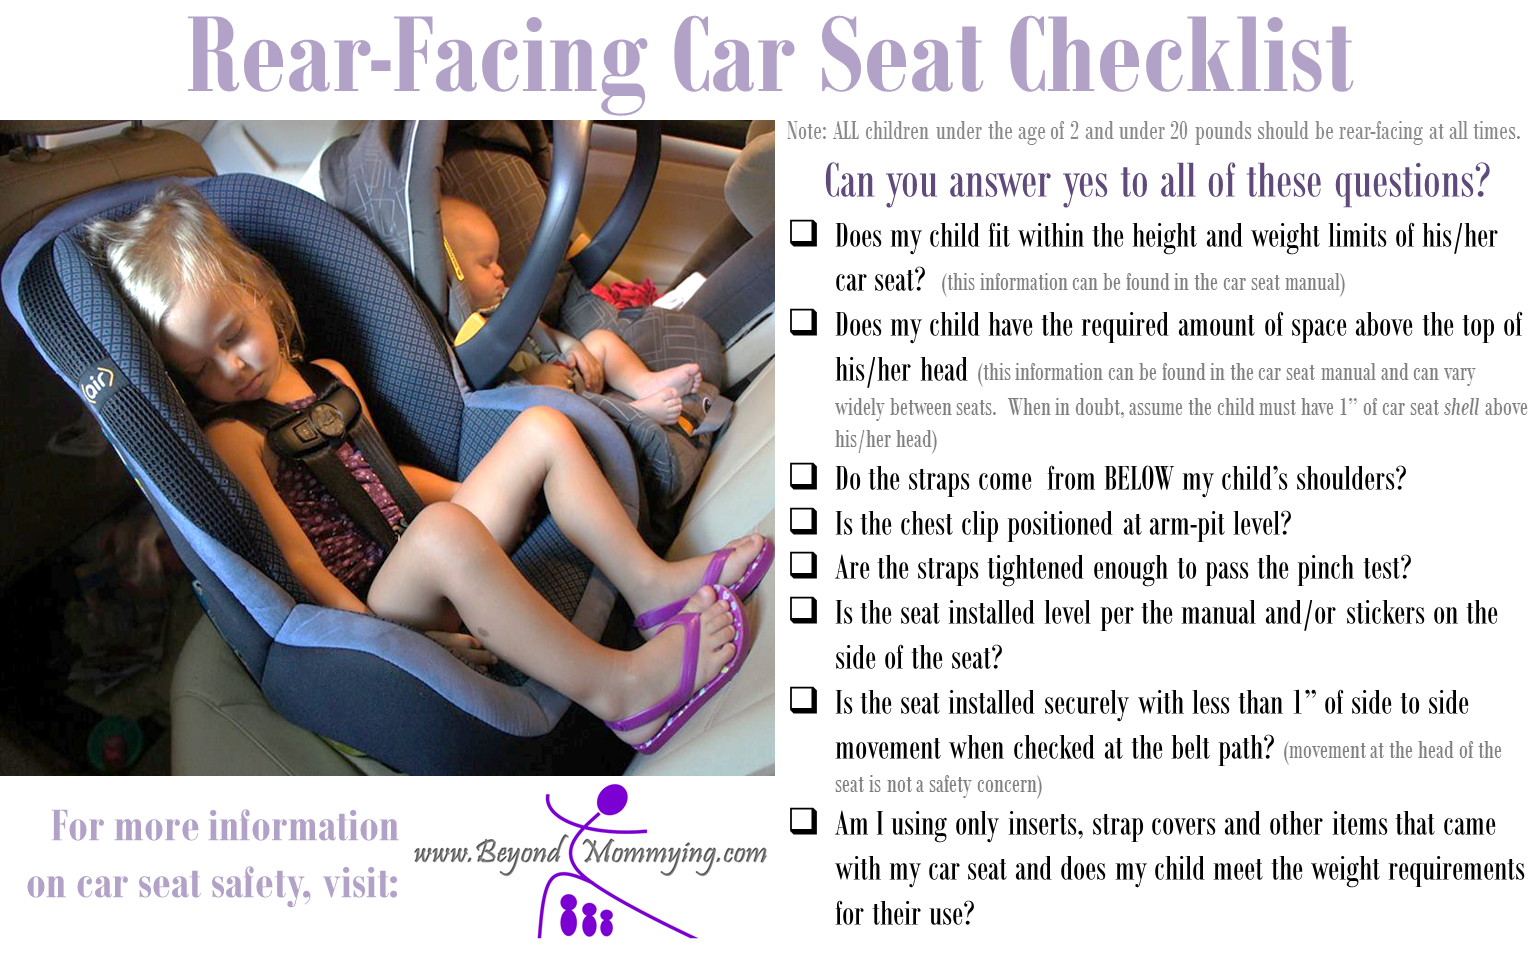 Car Seat Safety Checklists for Proper Car Seat Use Rear